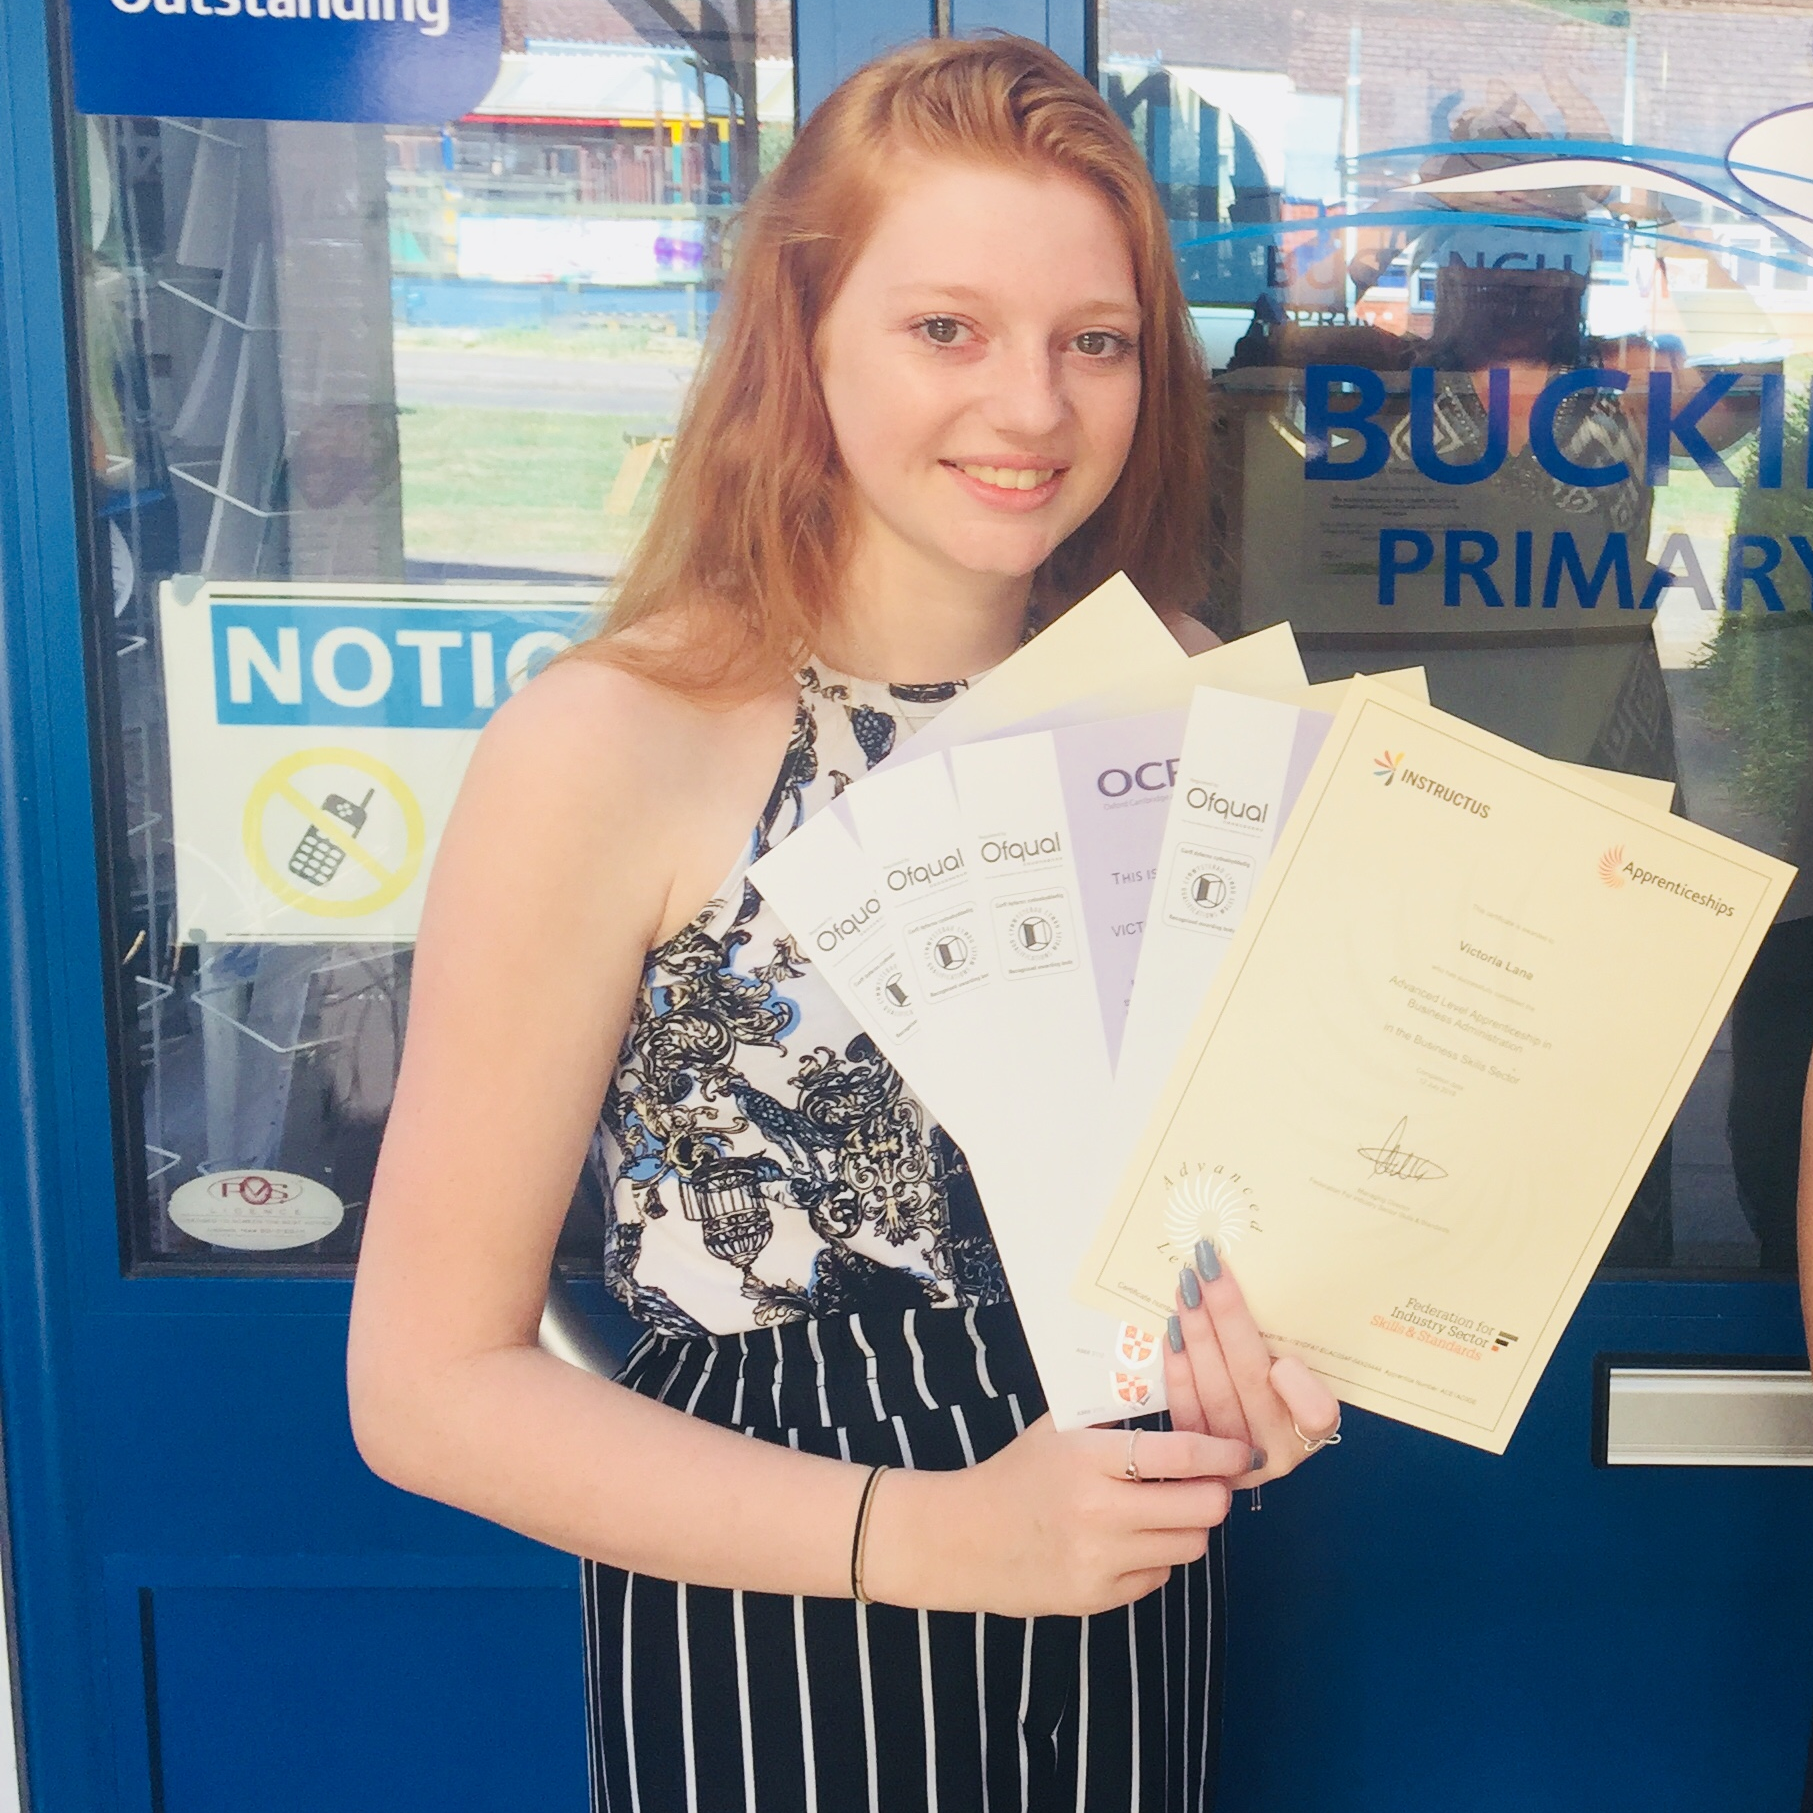 Girl with red hair holding certificates outside a door